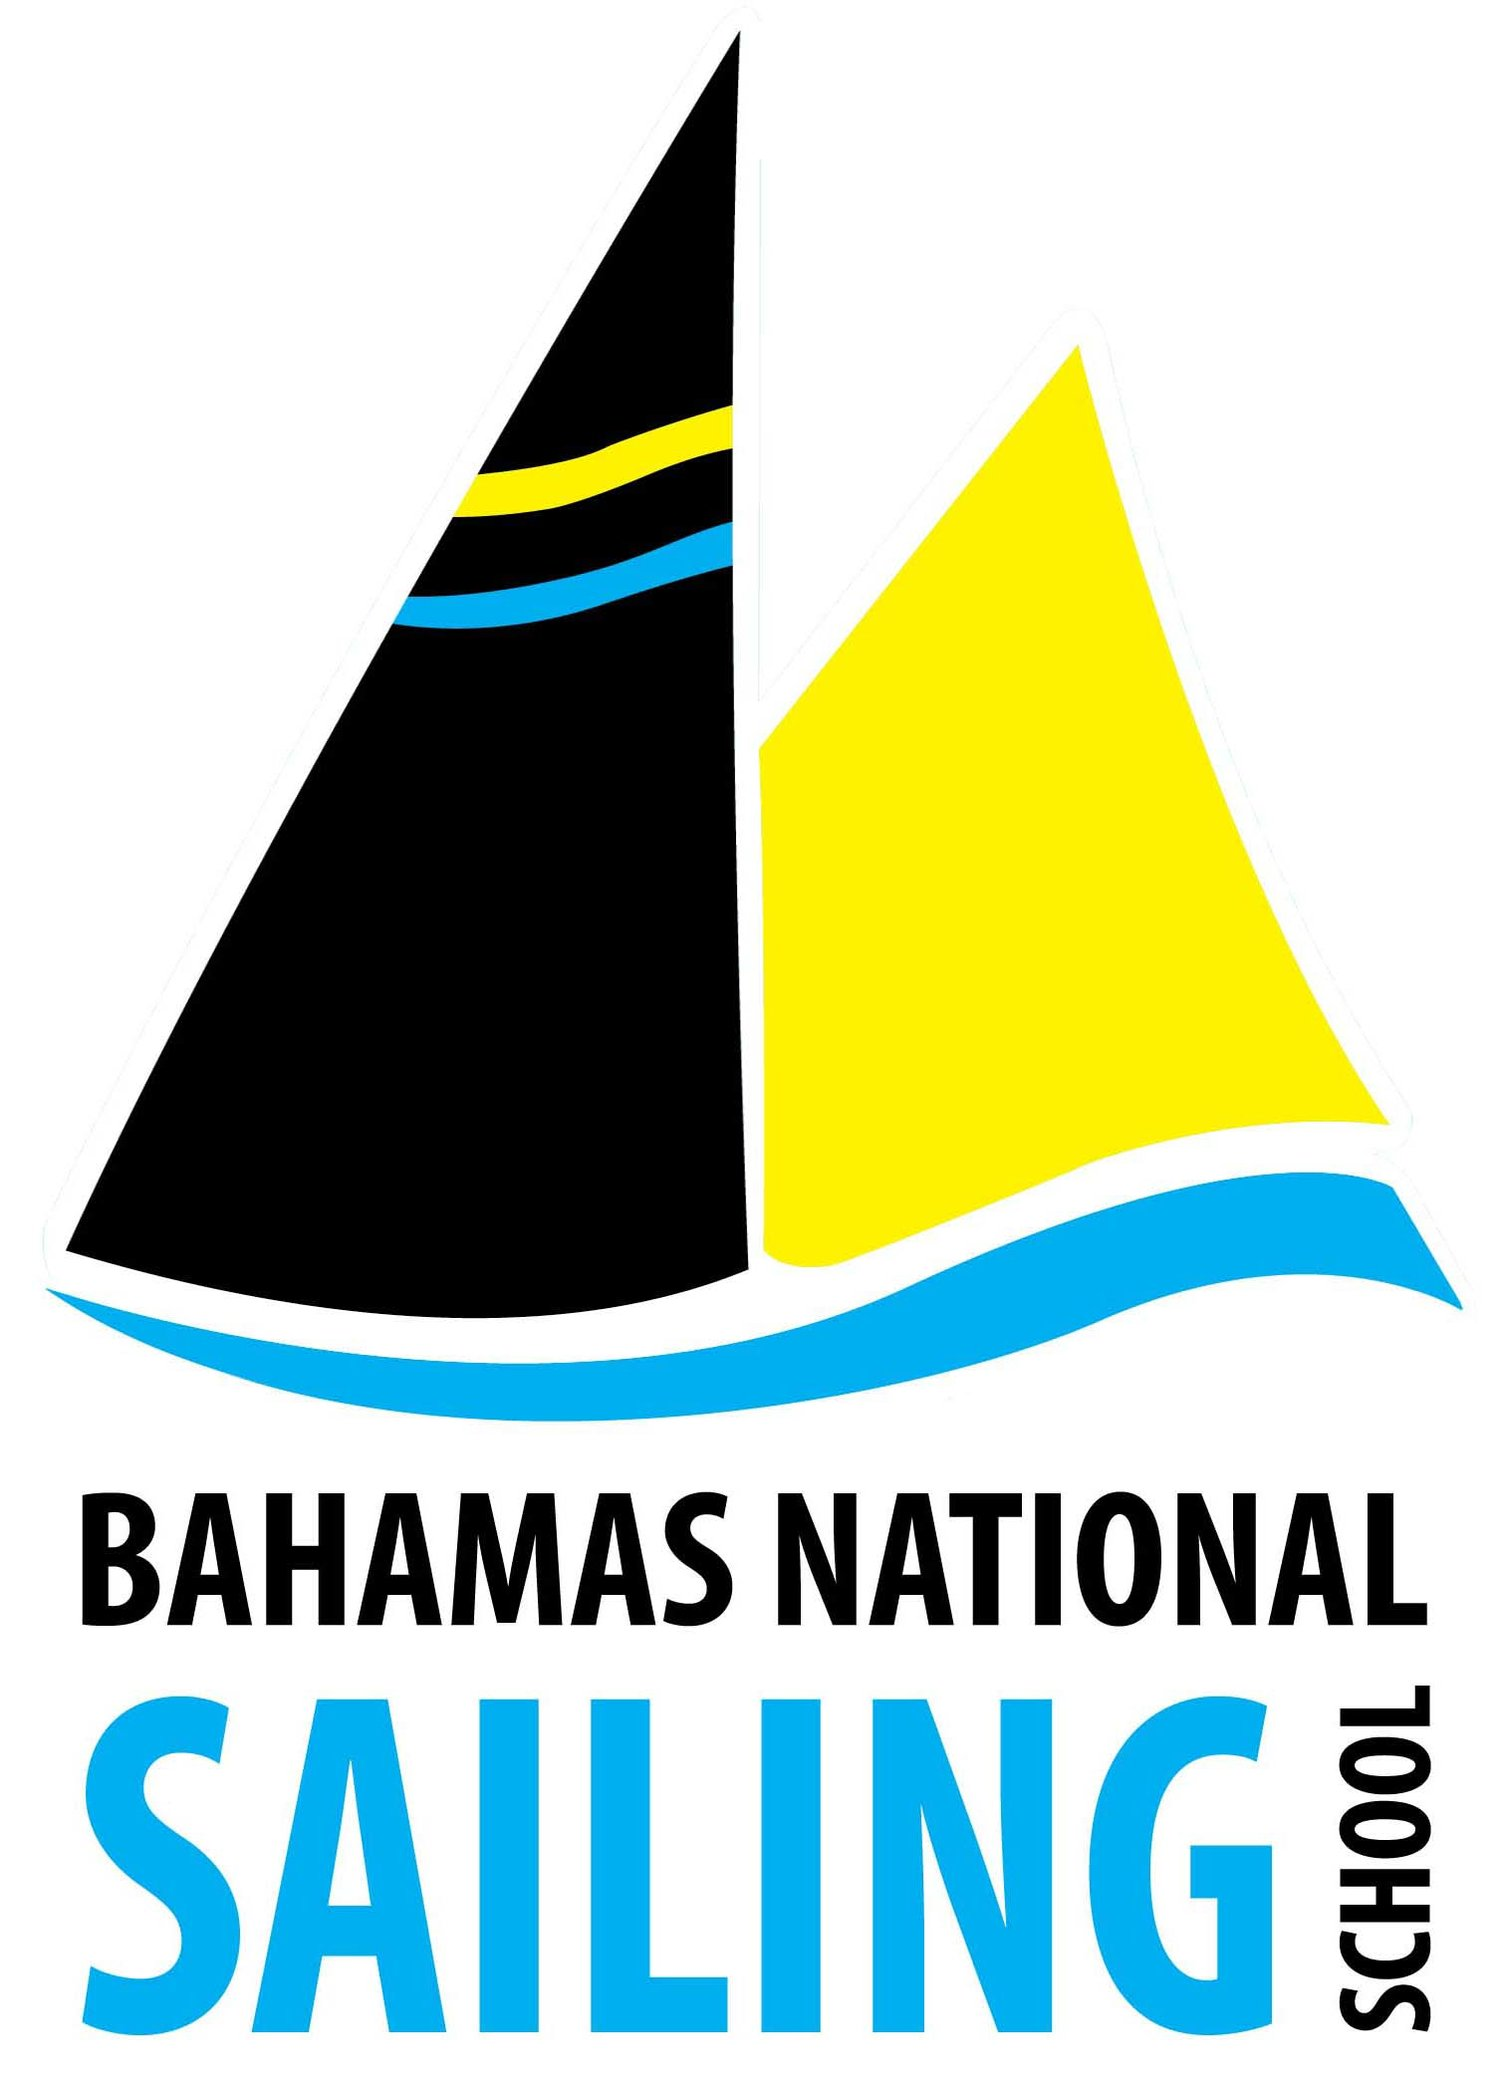 The Bahamas National Sailing School